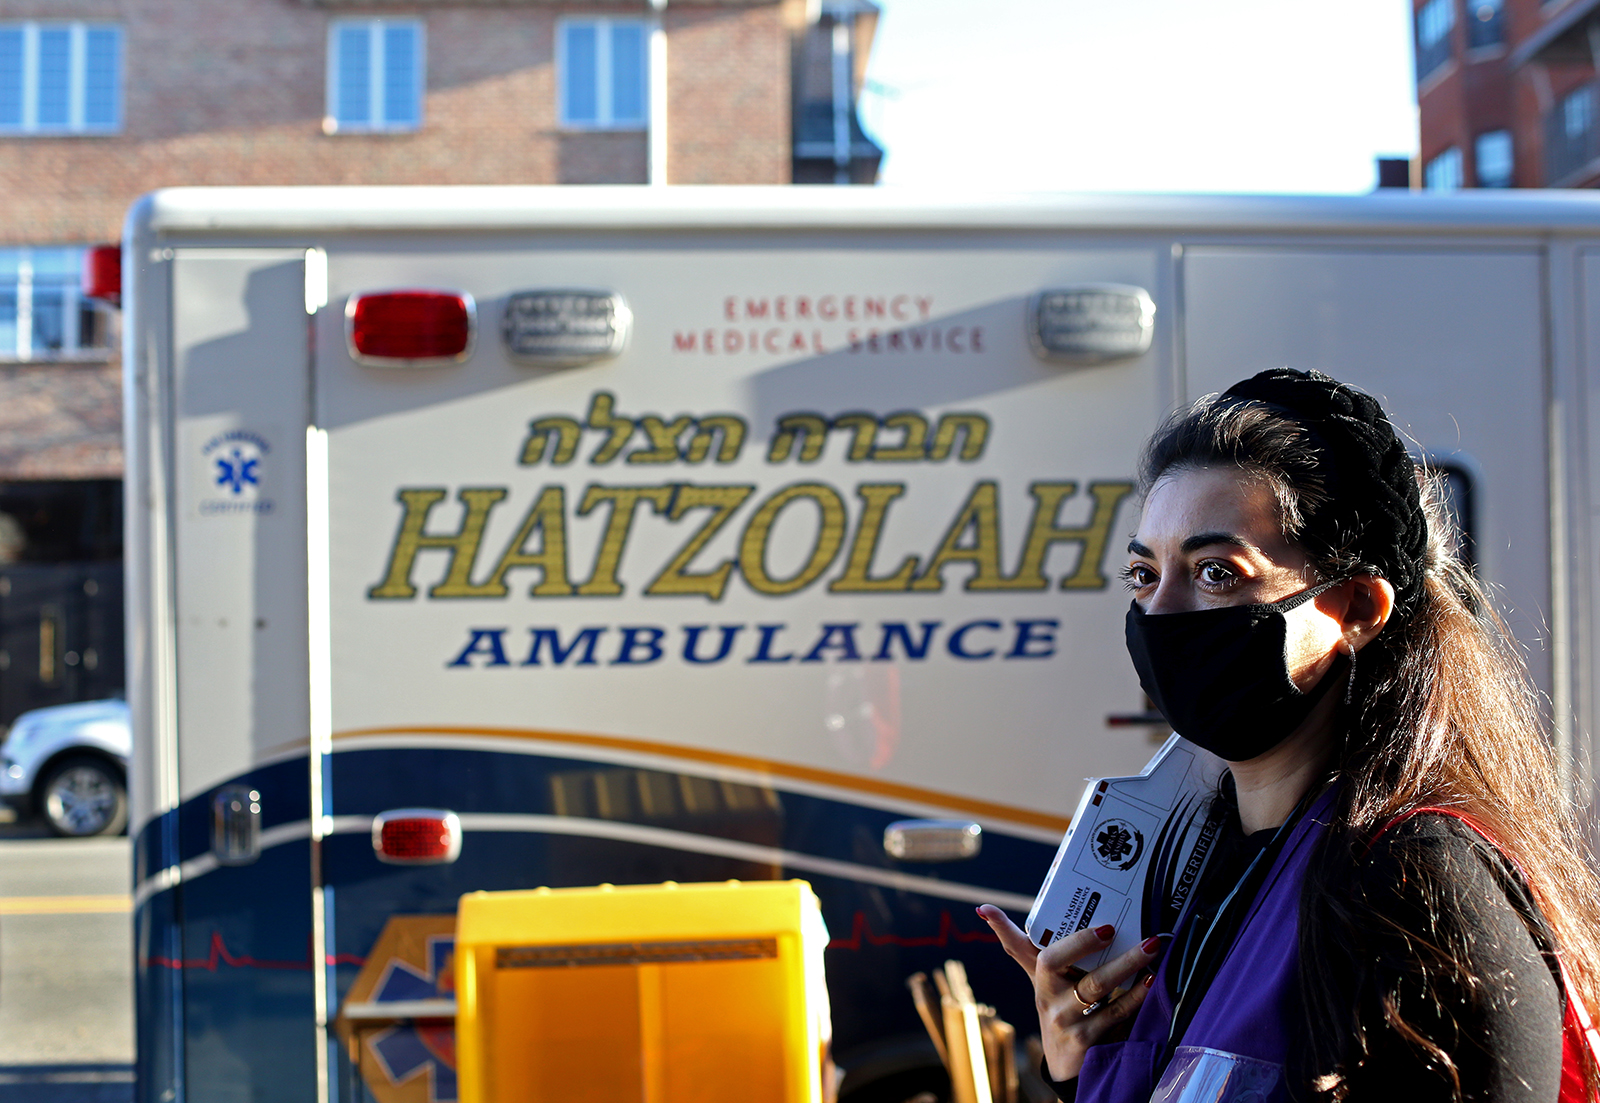 """EMT trainee Adina Sash, 34, carries an Ezras Nashim donations piggy bank around Borough Park in Brooklyn, right past the competing all-male EMTs' Hatzolah ambulance on December 06, 2020. Ezrash Nashim is the first all-female EMT corps aimed at servicing Orthodox Jewish communities of women. On the importance of Ezras Nashim, Sash says, """"When you have a community that filters education and access to information, especially about a woman's agency over her body, then it becomes even more important to equip those very women with the choice of where to turn in an emergency. Especially if the emergency is relevant to her reproductive system, having to confide in males in the community is tricky. Whereas women can help other women navigate those issues better.""""In addition to volunteering as a nurse for Ezras Nashim, in 2019 Sash ran for City Council in Brooklyn's 45th district as an Orthodox Jewish woman -- in a community that expects women to adhere to entirely different standards than male candidates, such as never showing their face in community newspaper ads, based on a religious tradition that directs men to shield their eyes from potentially improper images of women -- and says she considers herself a feminist. {quote}There needs to be more acceptance for women getting education in the Orthodox community, and the community is split on this. There is a 'If it's not broken, don't fix it' mentality because [all-male competing EMT organization] Hatzolah already exists, but there are others who understand inclusion of women leads to better care overall.{quote} On her motivations to run for office, to which she says she faced a lot of opposition from the community, she says: {quote}Making girls in the community aware that in addition to starting a family, there is importance to being part of the political process, challenges the narrative that it's a mans job to run for office.{quote}(Photo by: Yana Paskova for The New York Times/the National Geographic Society)"""